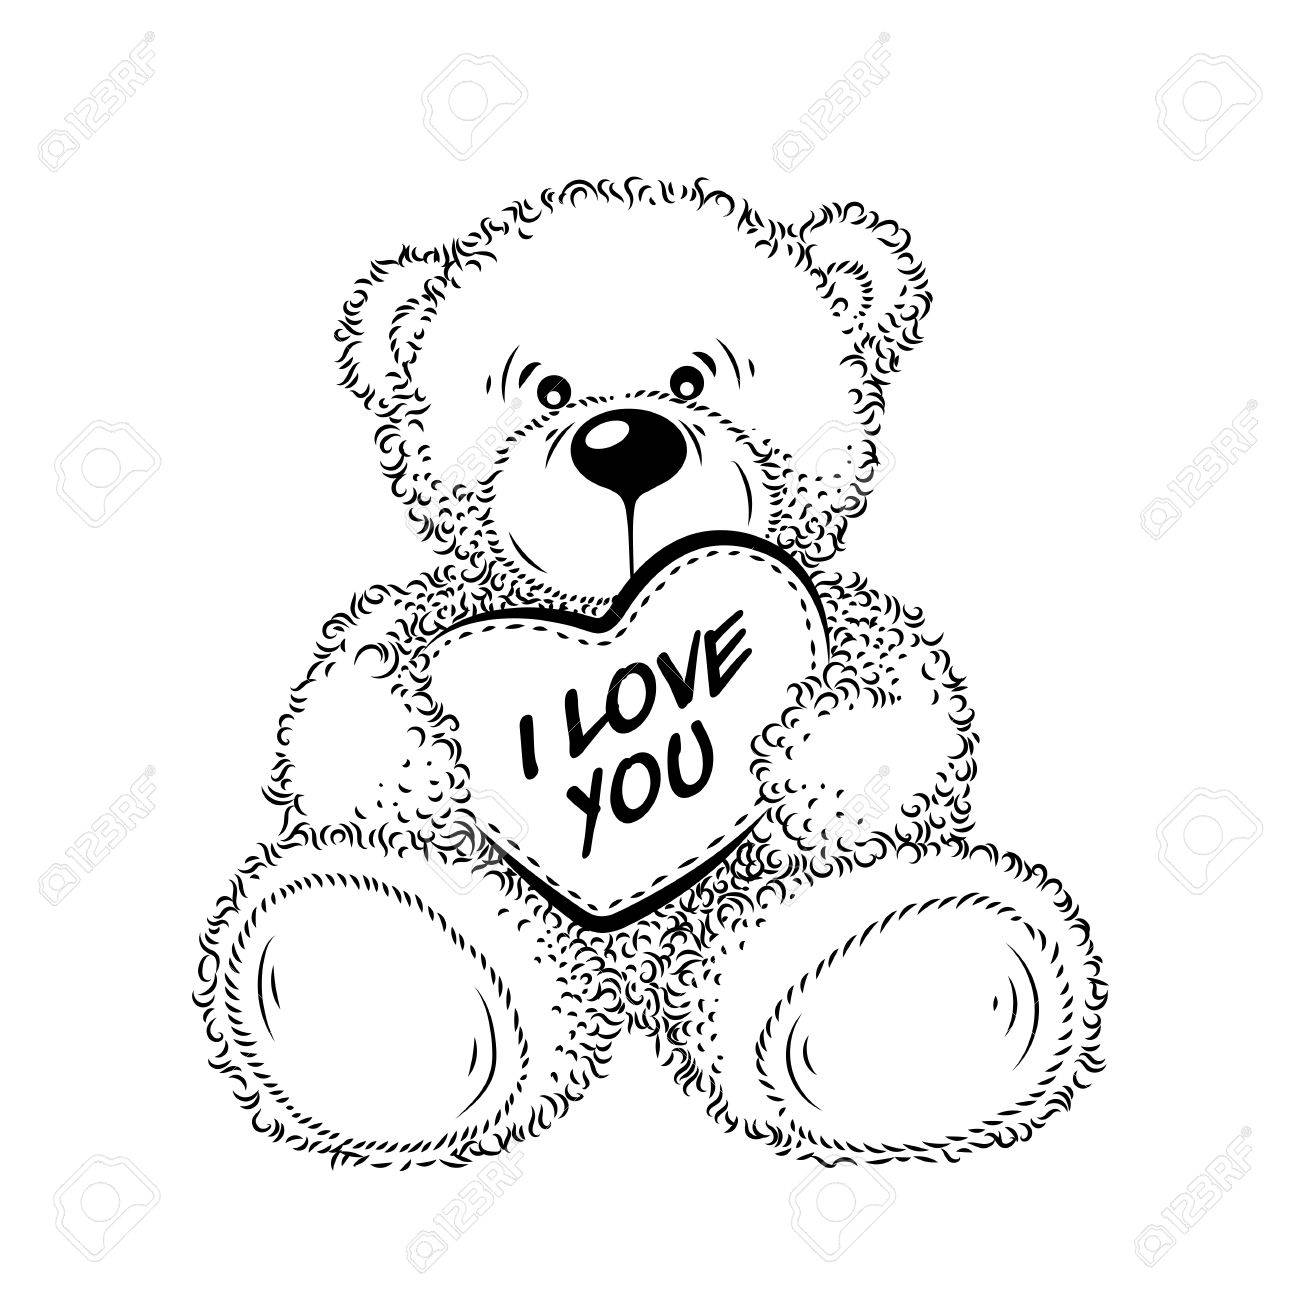 Cute drawing teddy bear with heart vector illustration royalty free cute drawing teddy bear with heart vector illustration stock vector 73414864 altavistaventures Image collections